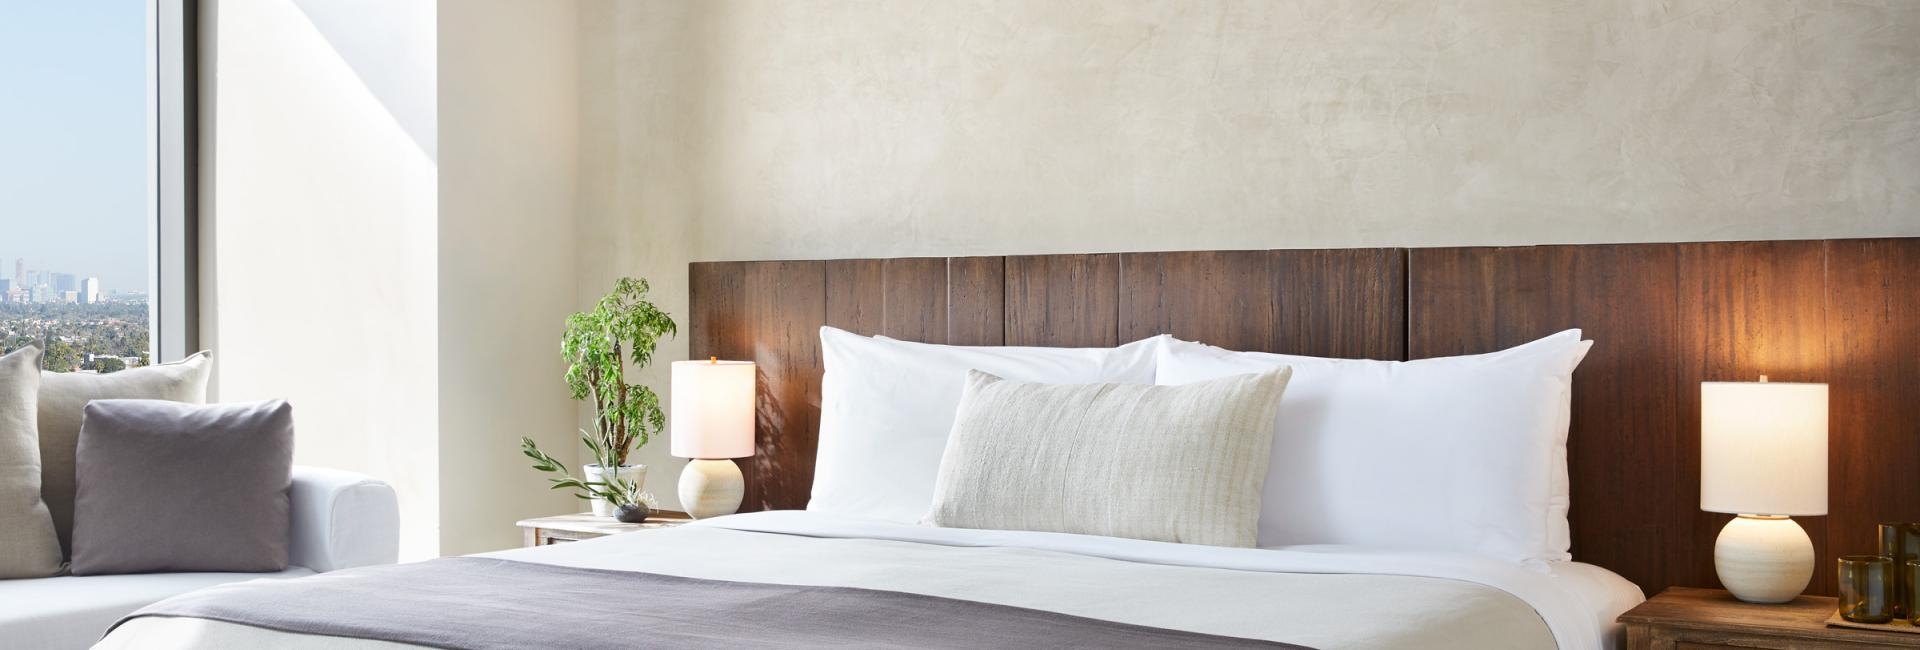 A modern and luxurious king bed made with natural materials